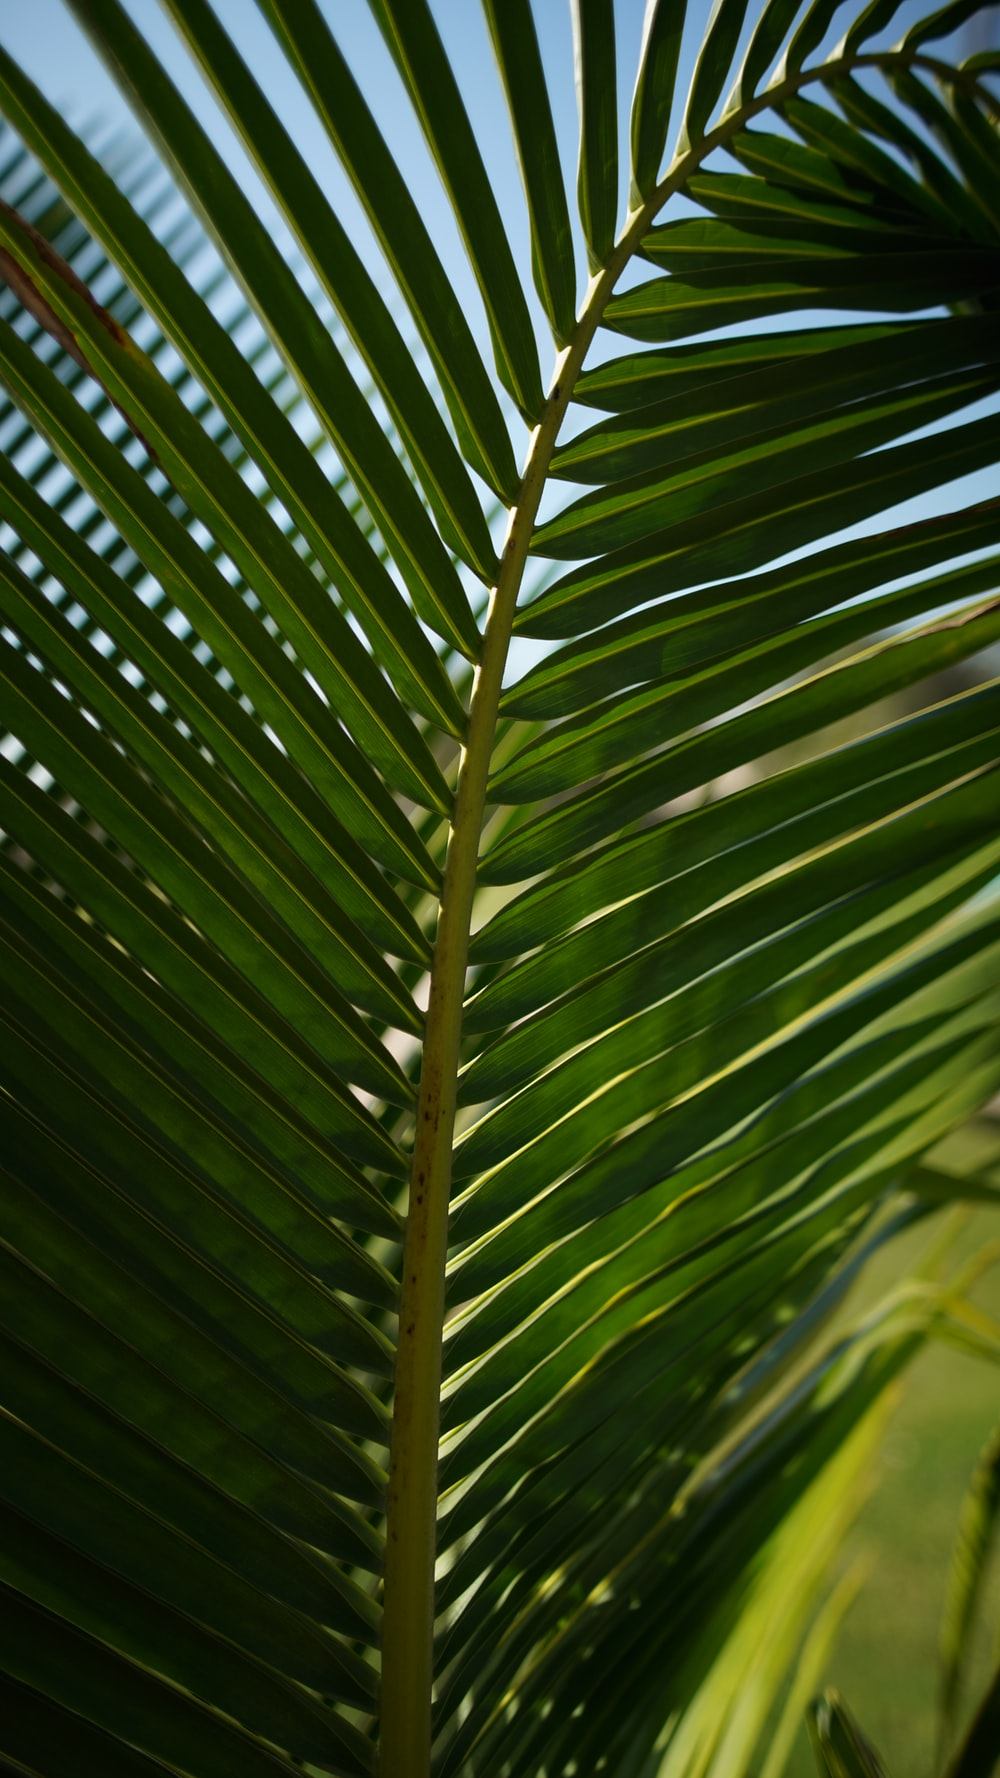 green palm leaf during daytime